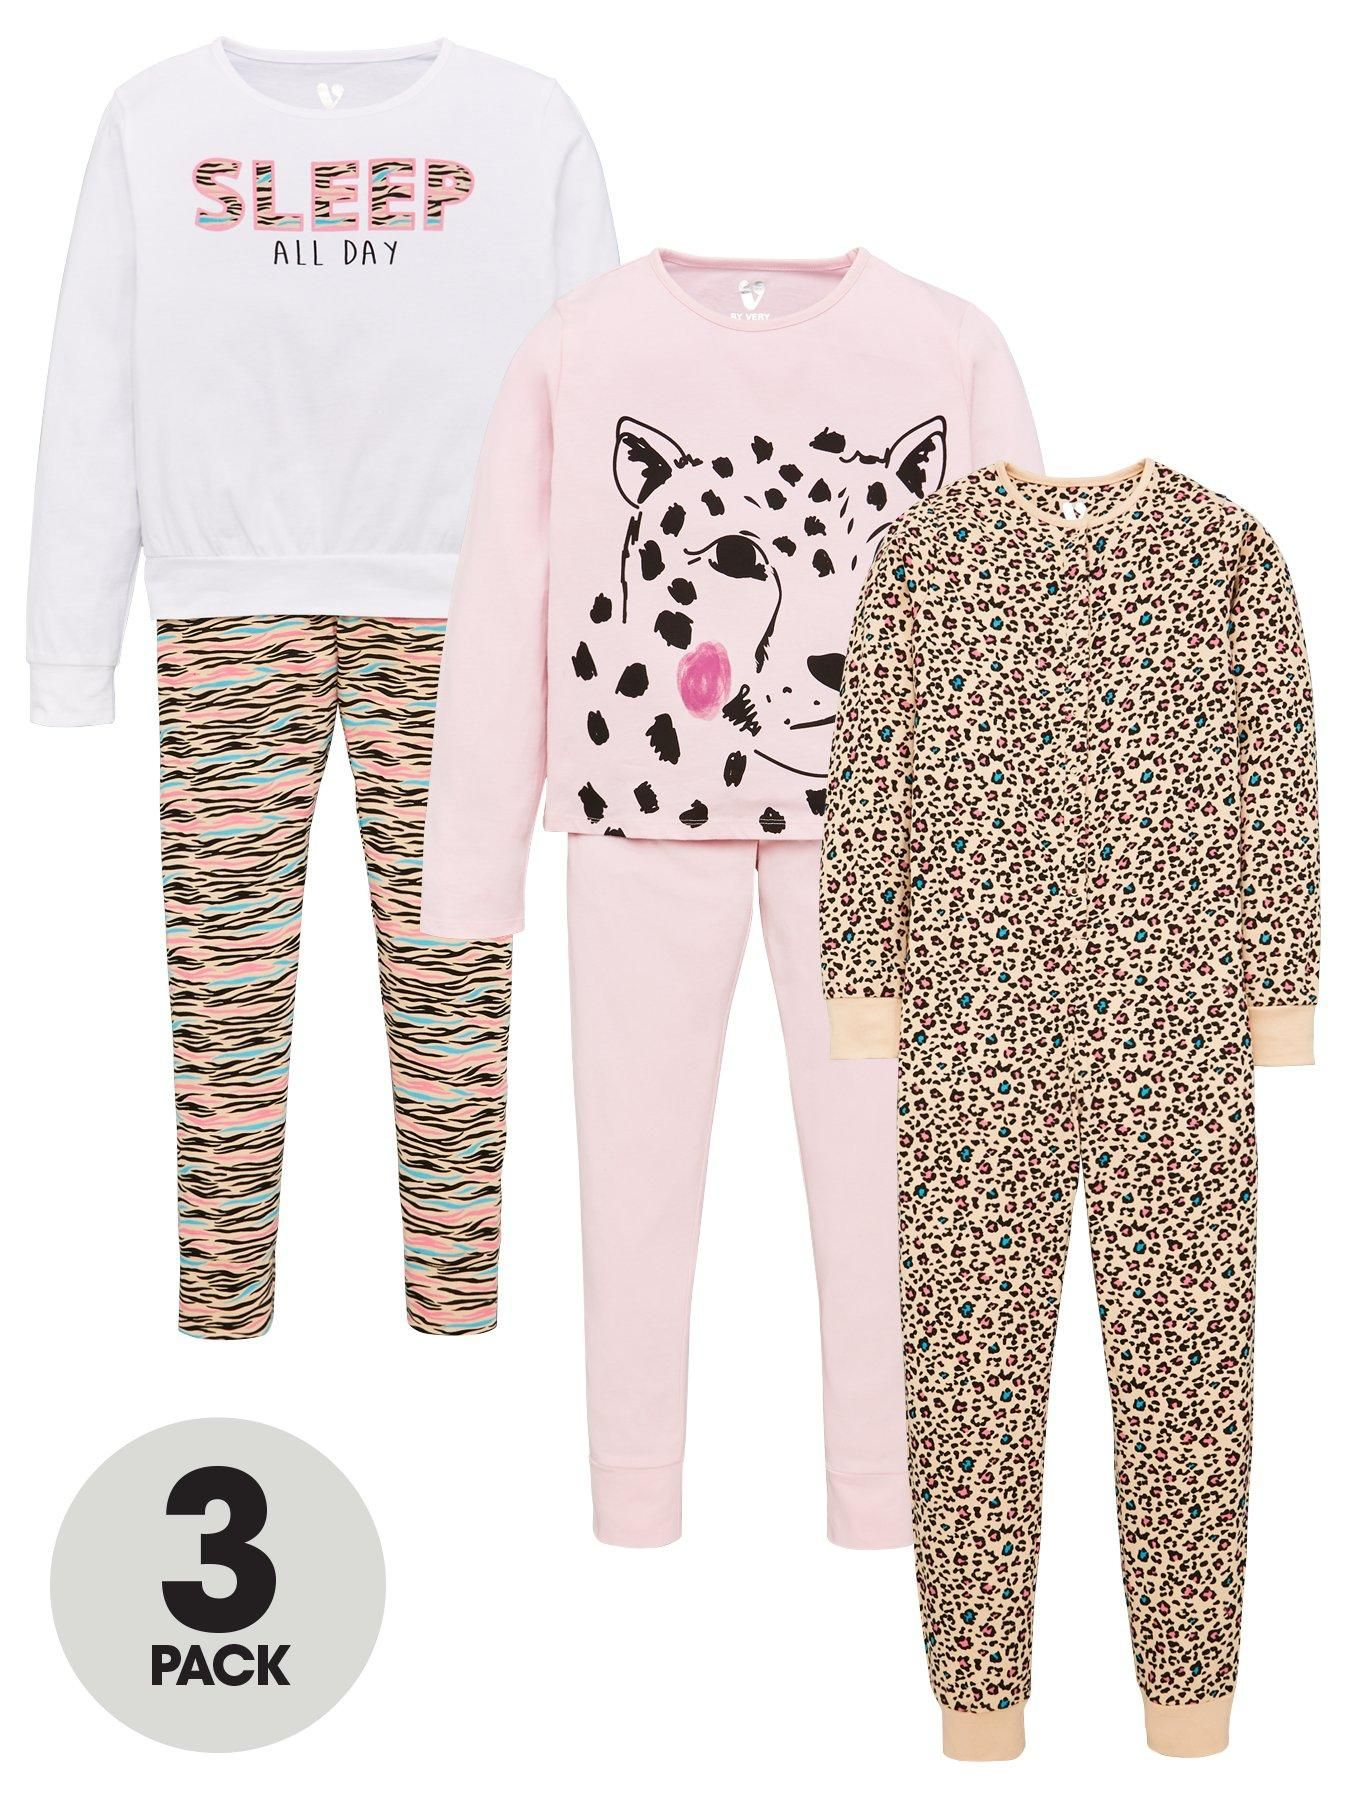 Girls 3 Pack Animal Print Pyjama Set Multi Print Pajamas